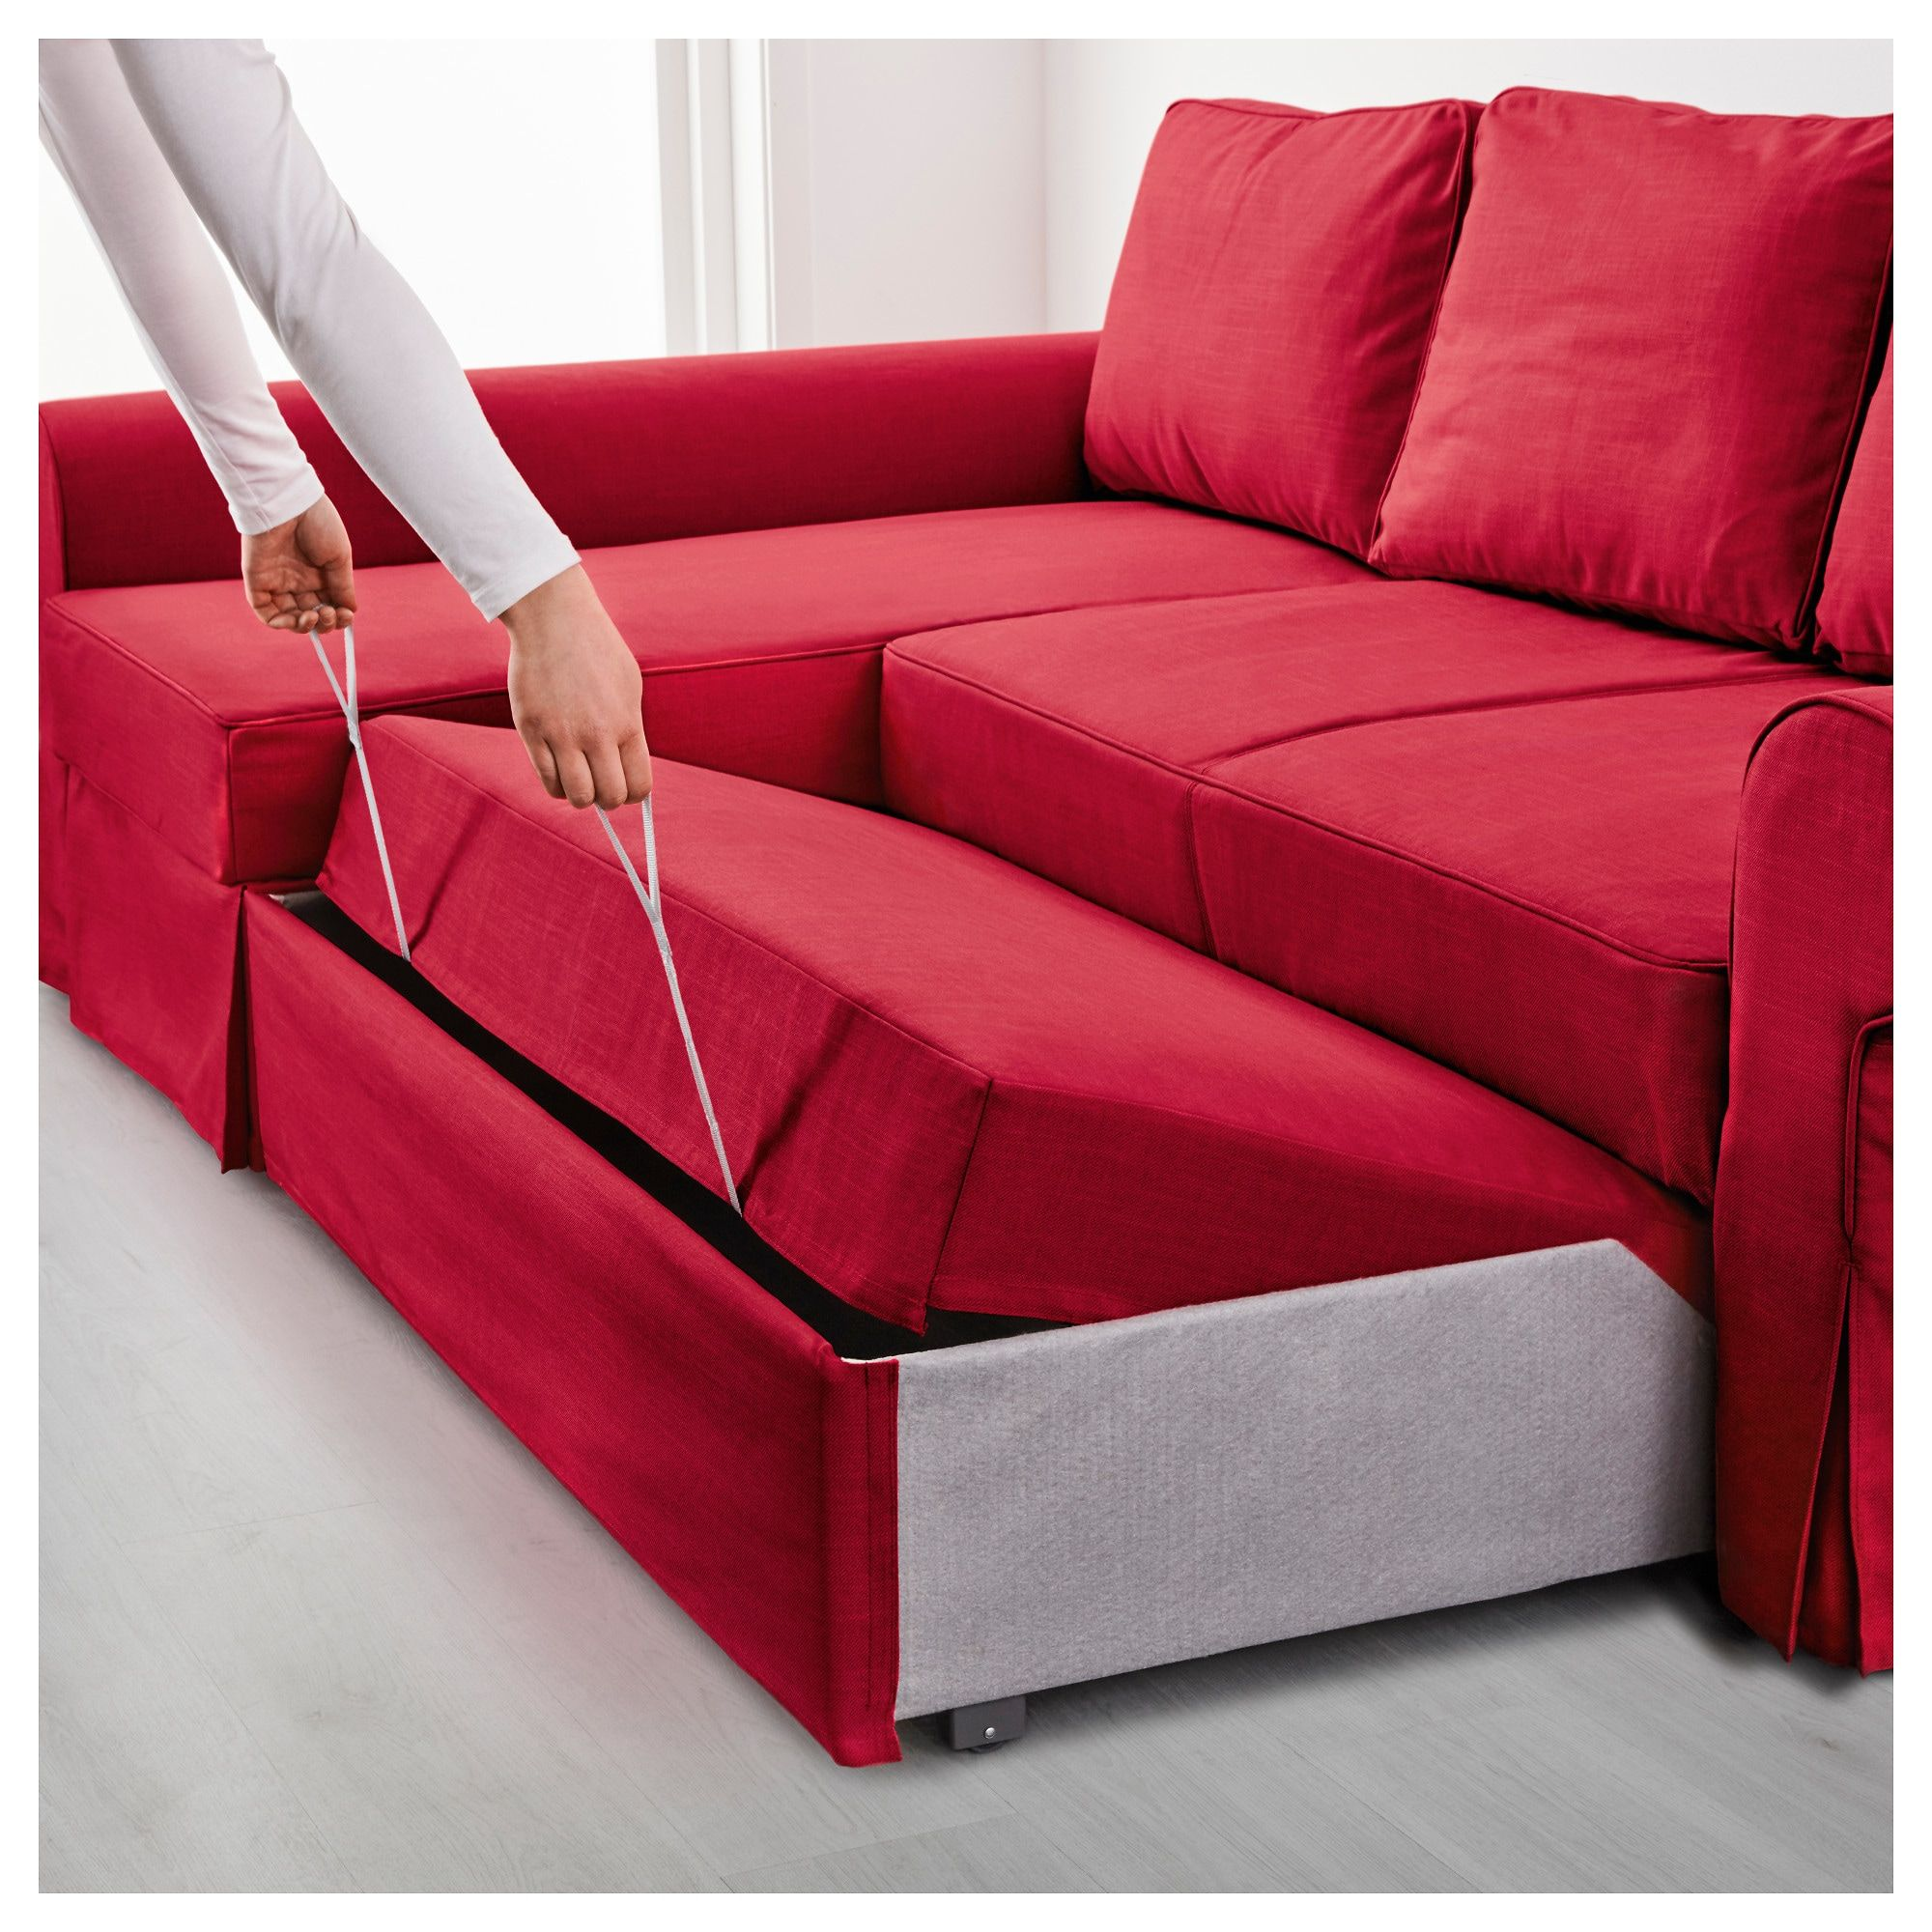 Backabro Ecksofa Backabro Bettsofa Recamiere Nordvalla Rot In 2019 Products